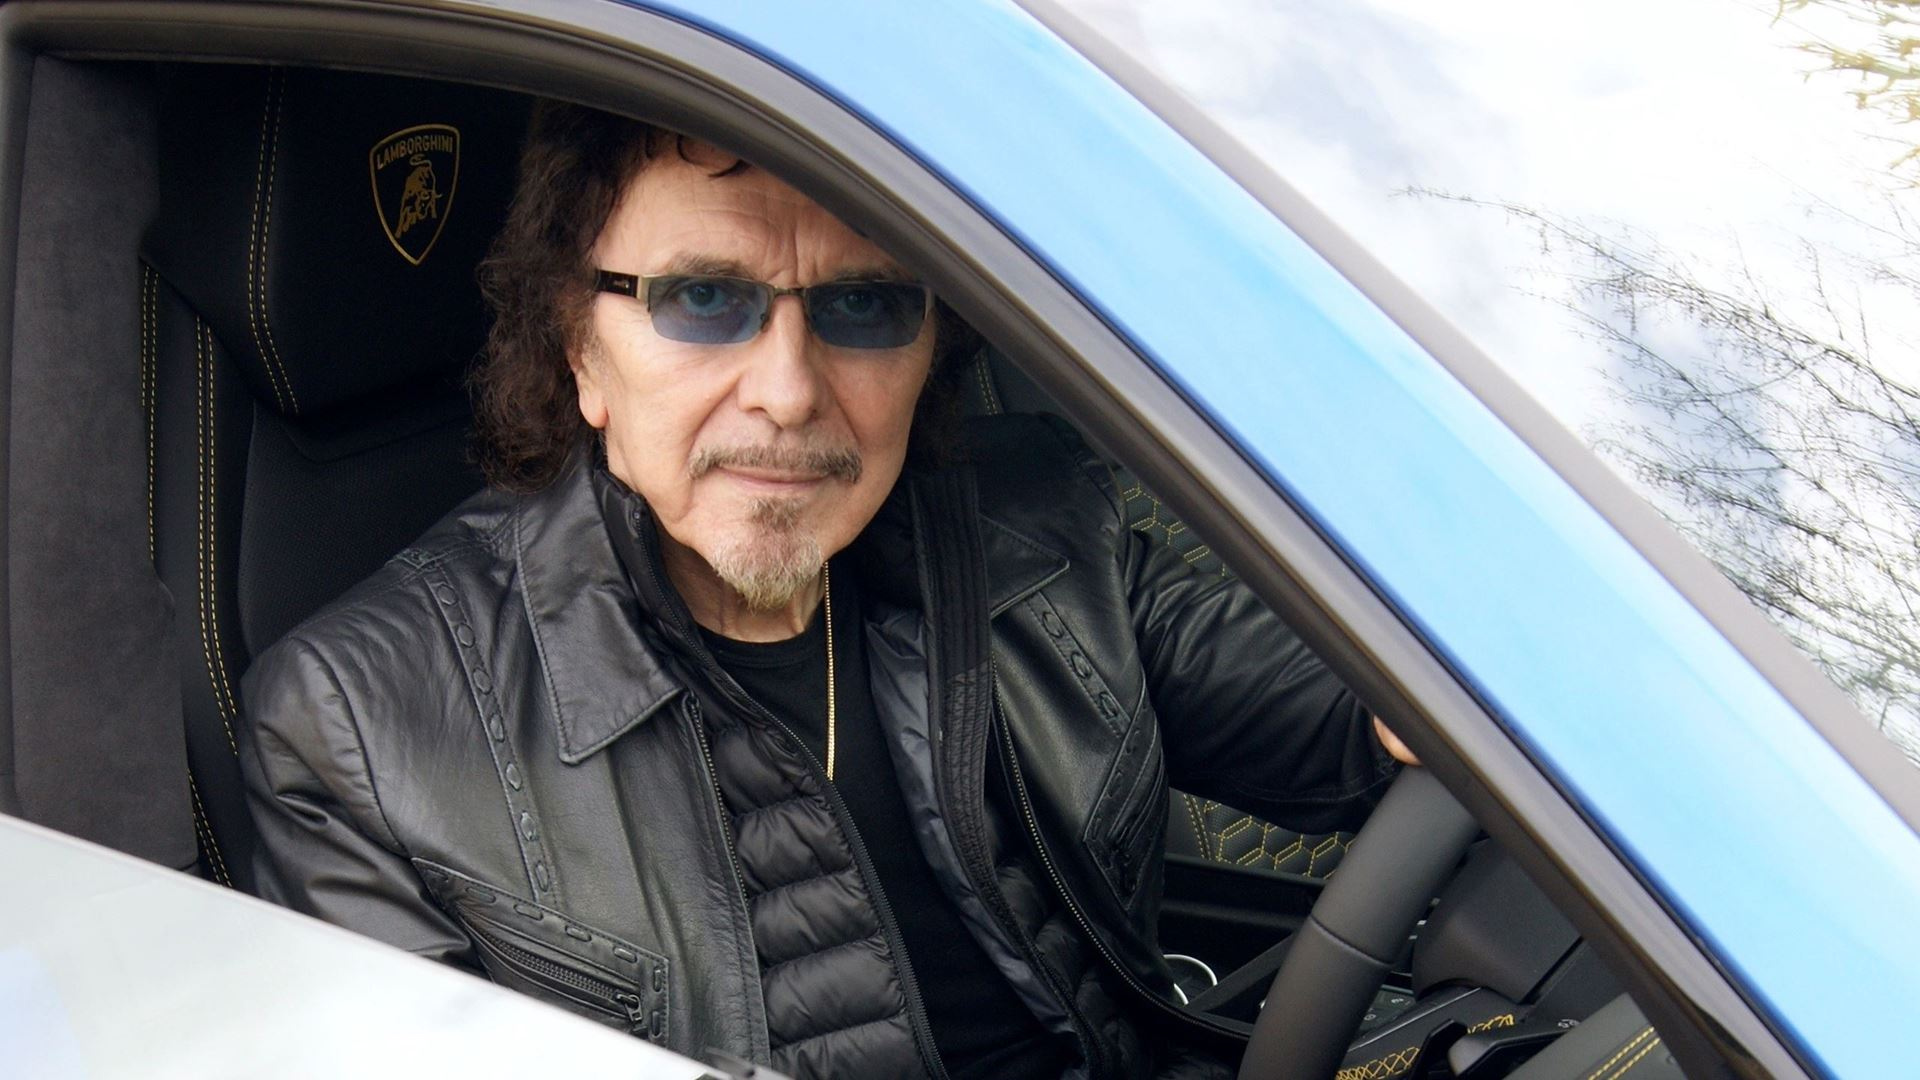 The link between Black Sabbath and Automobili Lamborghini: Rock legend Tony Iommi shares his passion for super sports cars from Sant'Agata Bolognese - Image 3